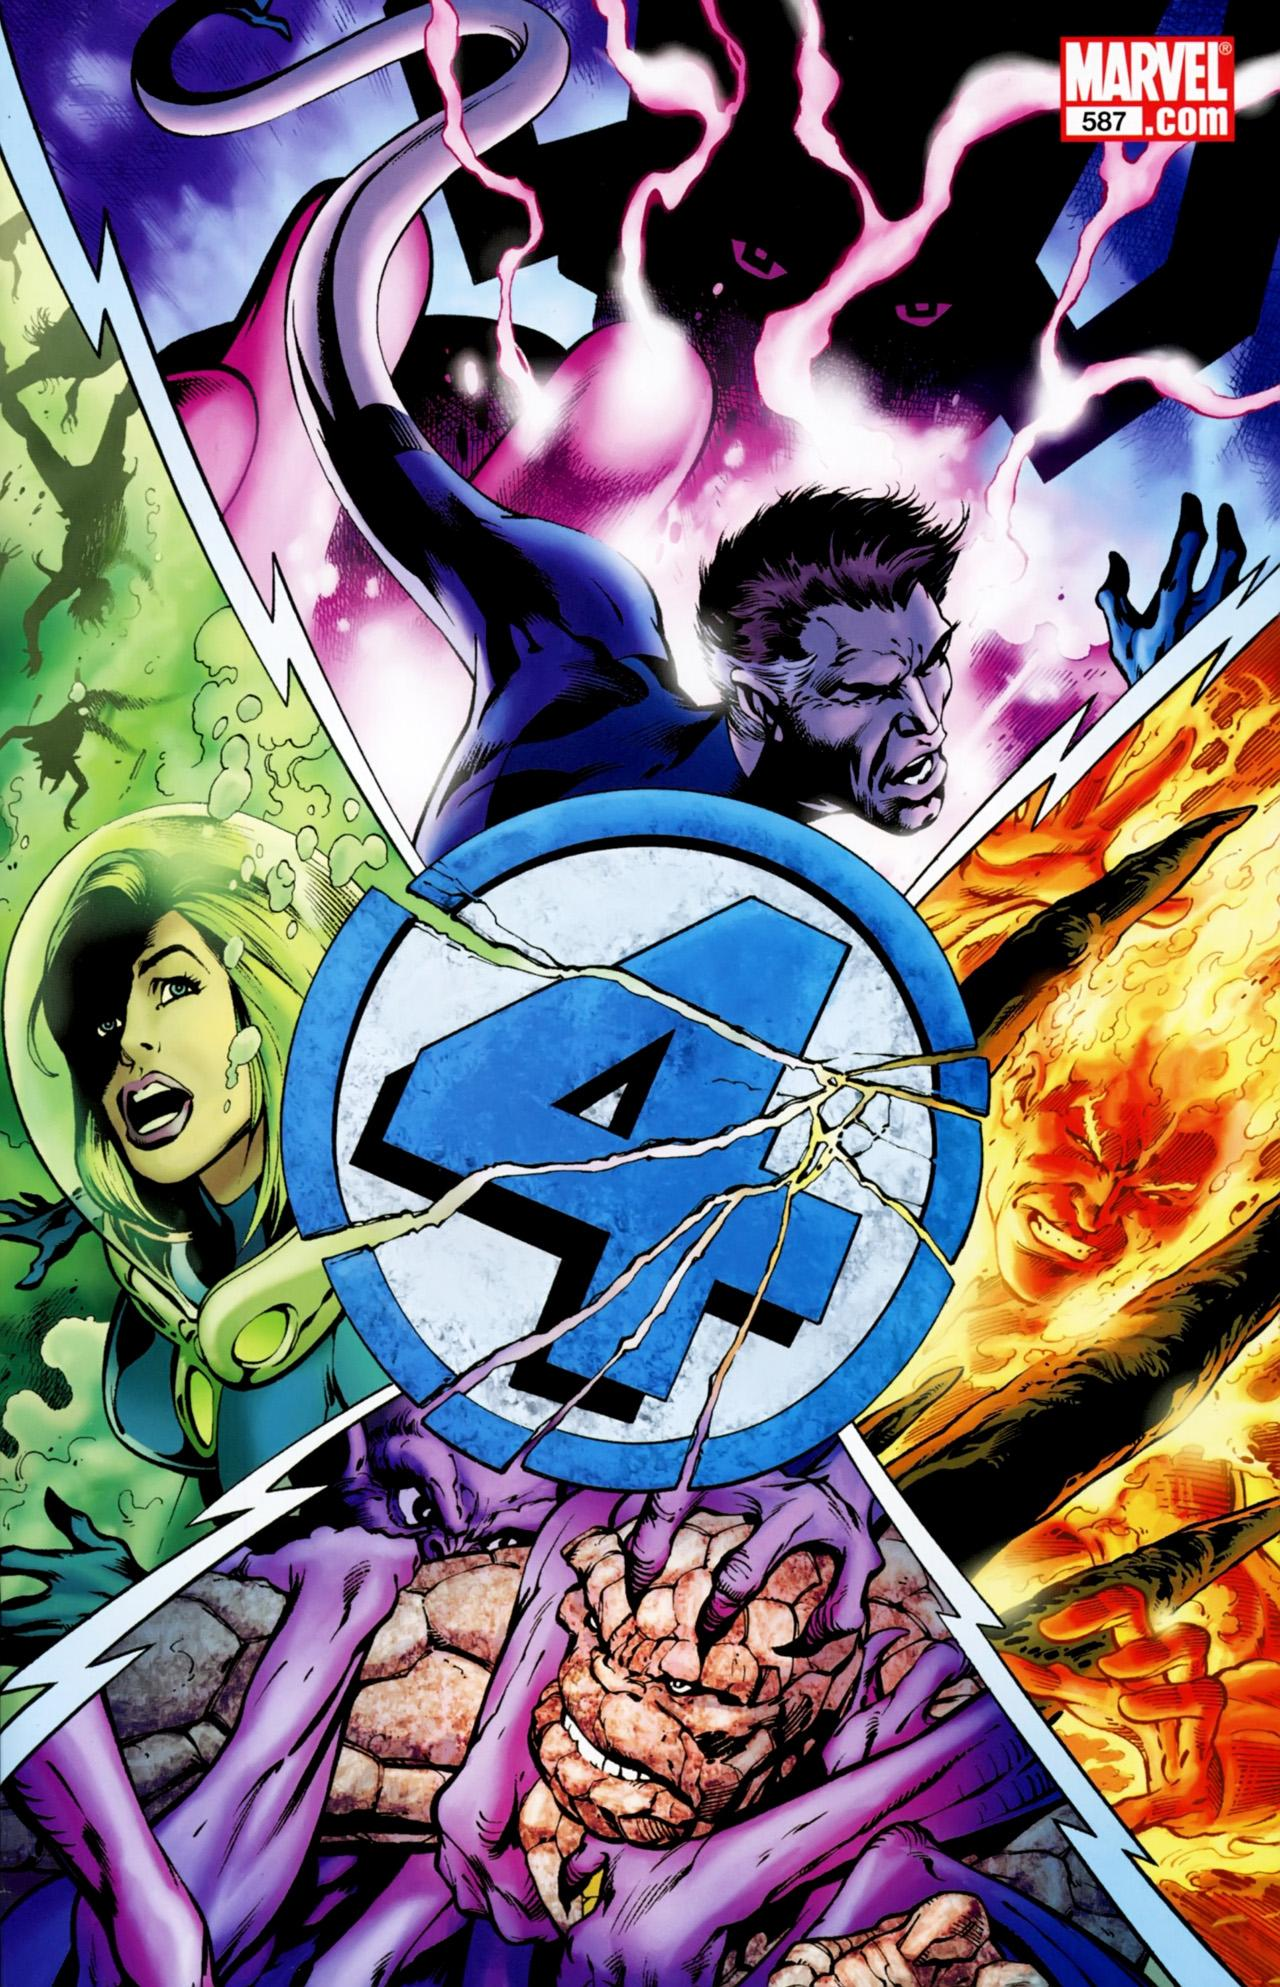 Fantastic Four Vol. 1 #587